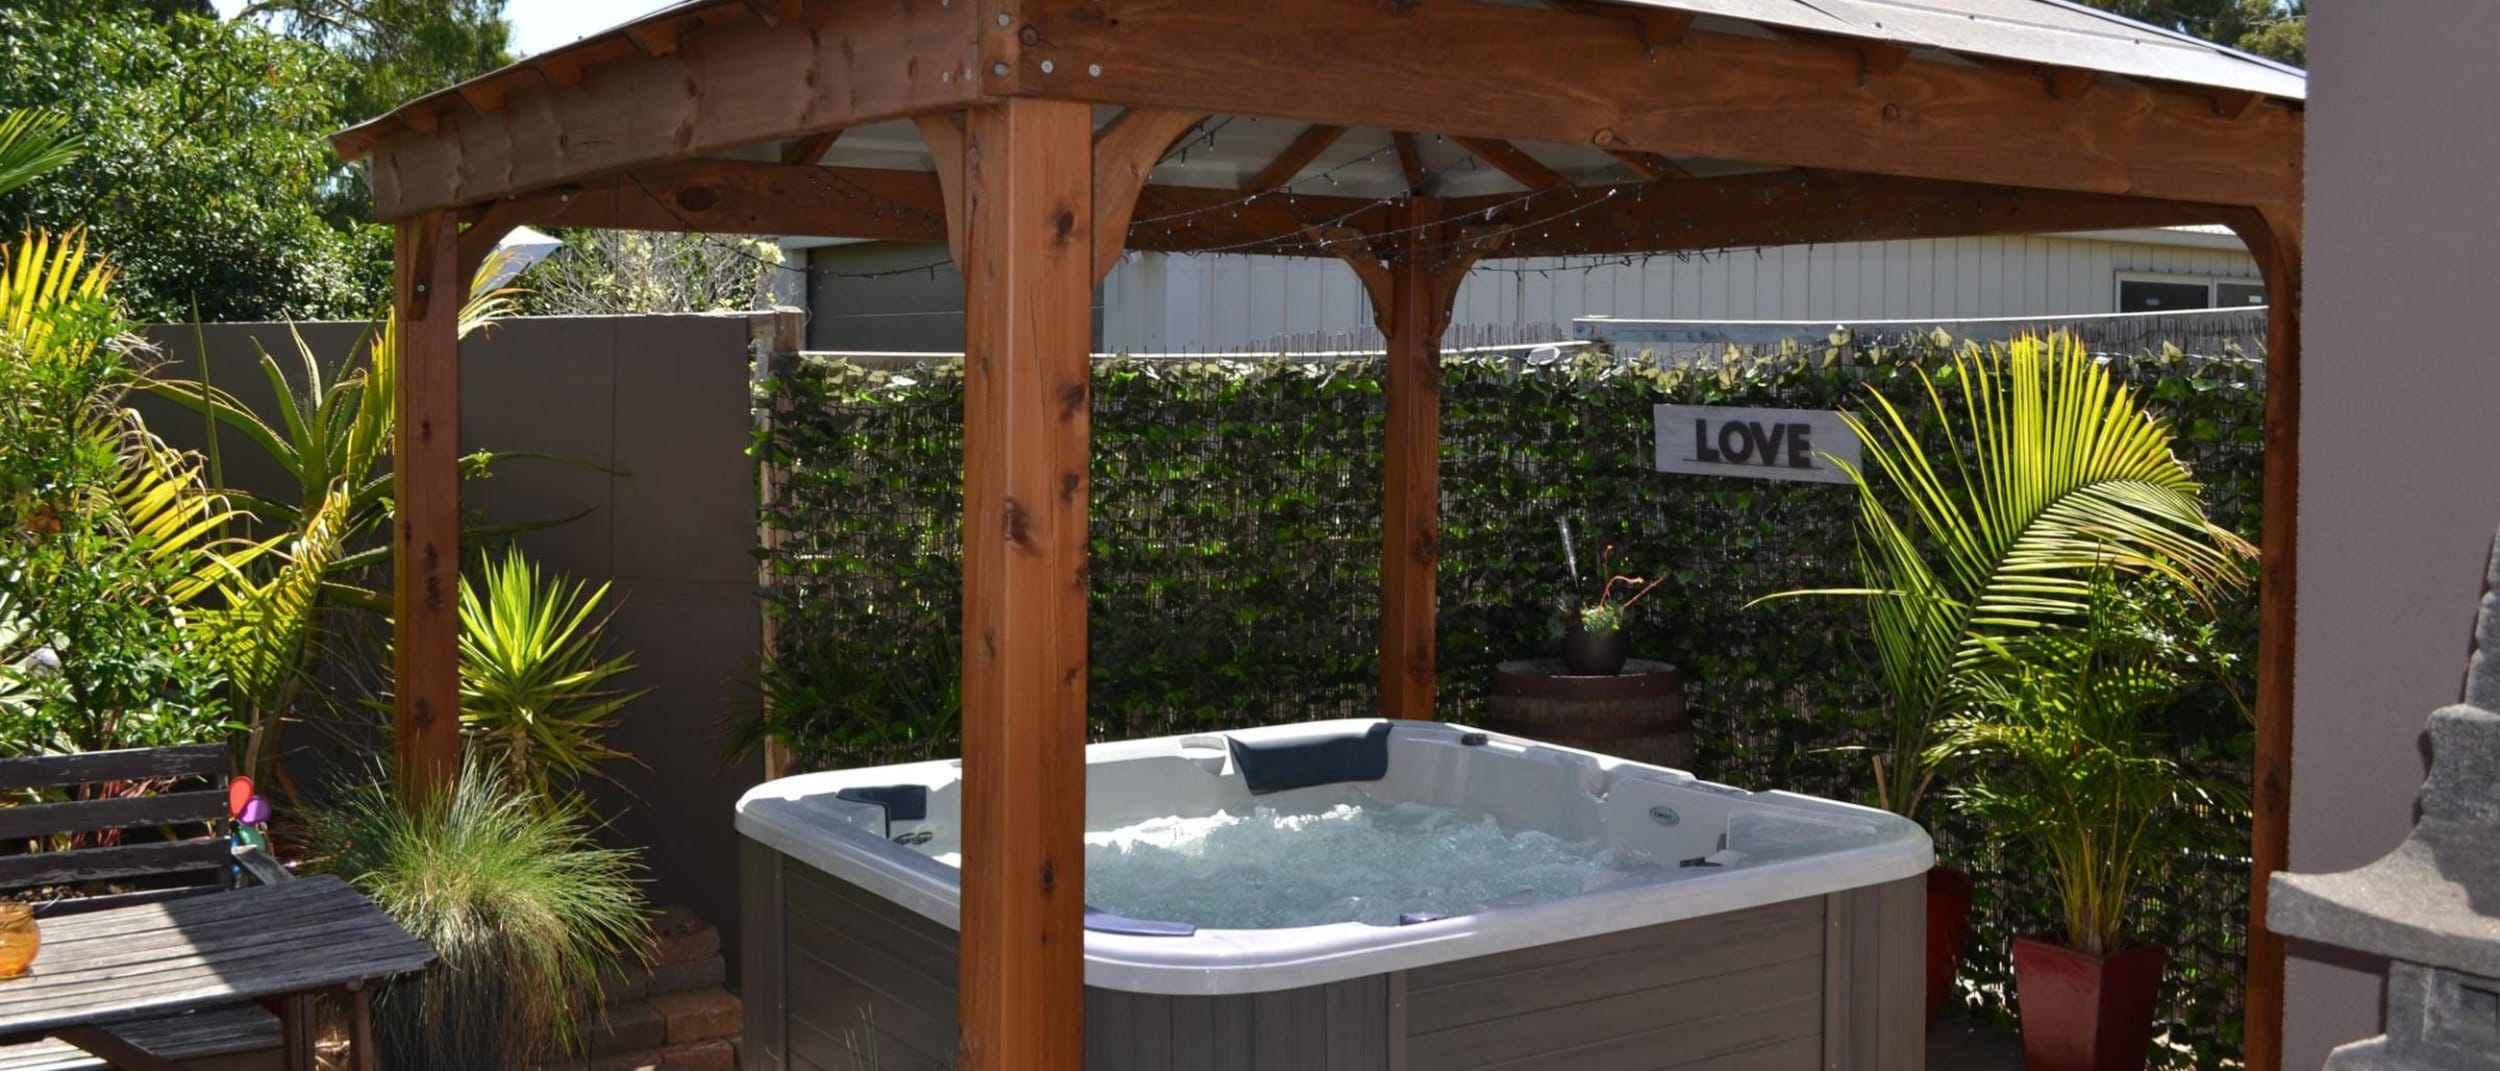 5 Star Spas: end of financial year sale